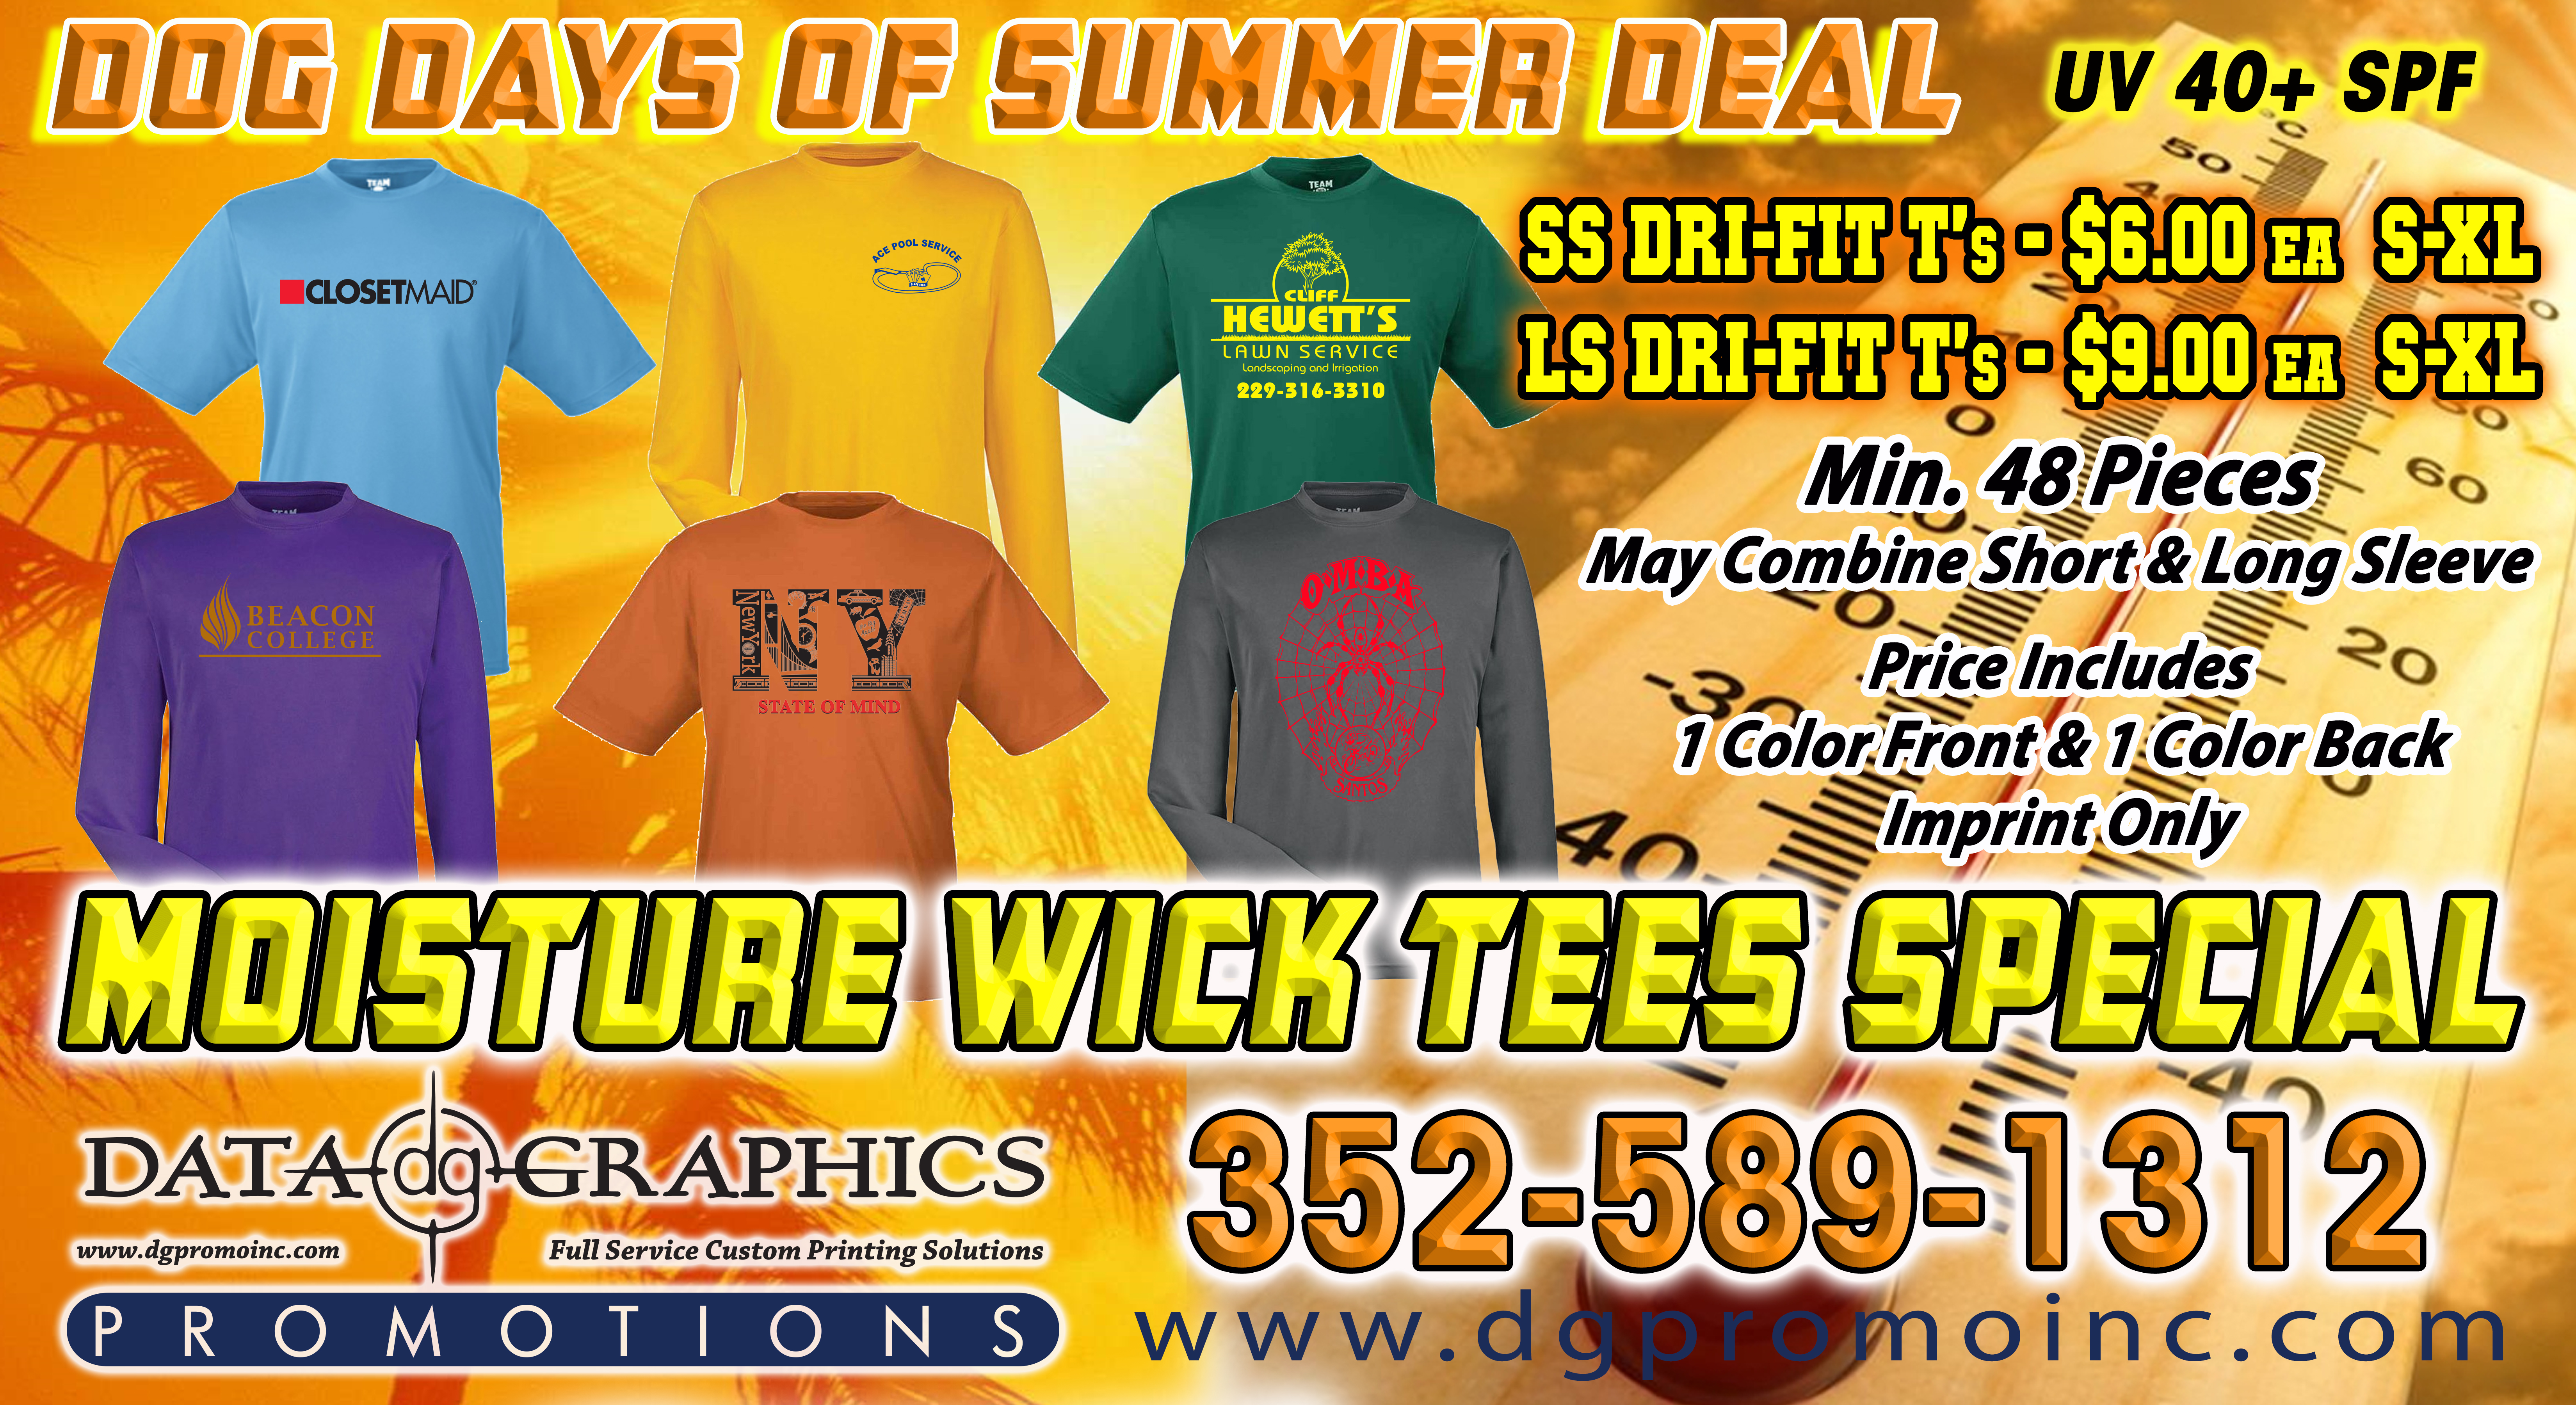 Promotional Products & Custom T-Shirts Orlando, Central